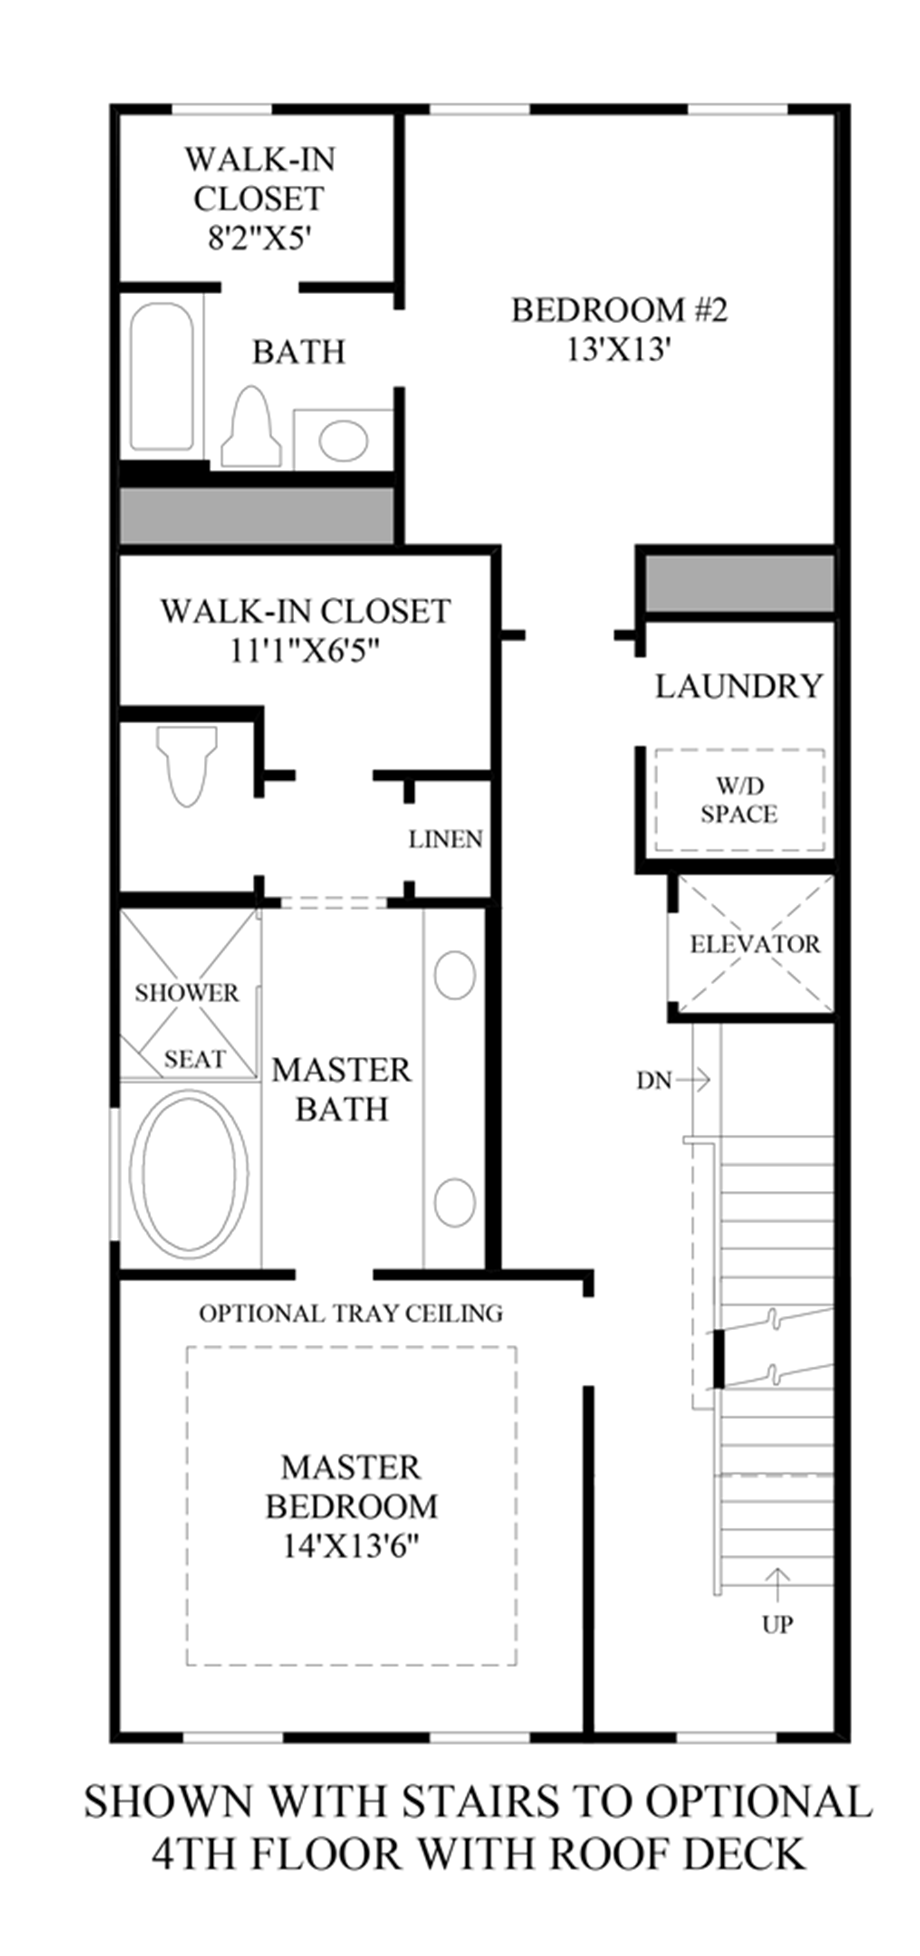 Stairs to Optional 4th Floor w/ Roof Deck Floor Plan